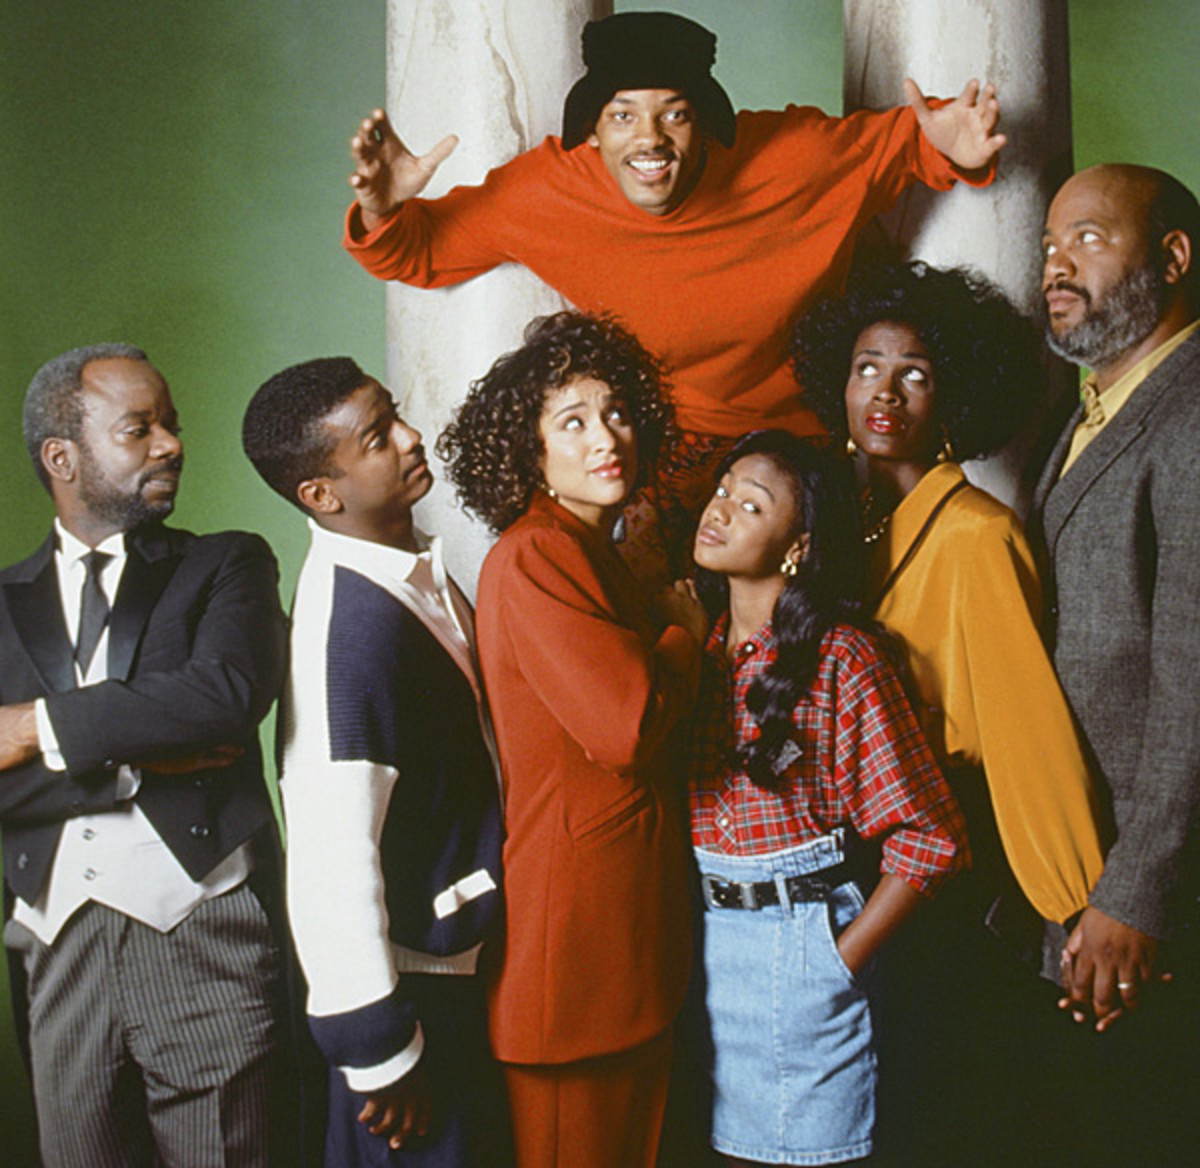 Fresh Prince of Bel-Air cast :: NBC/Getty Images